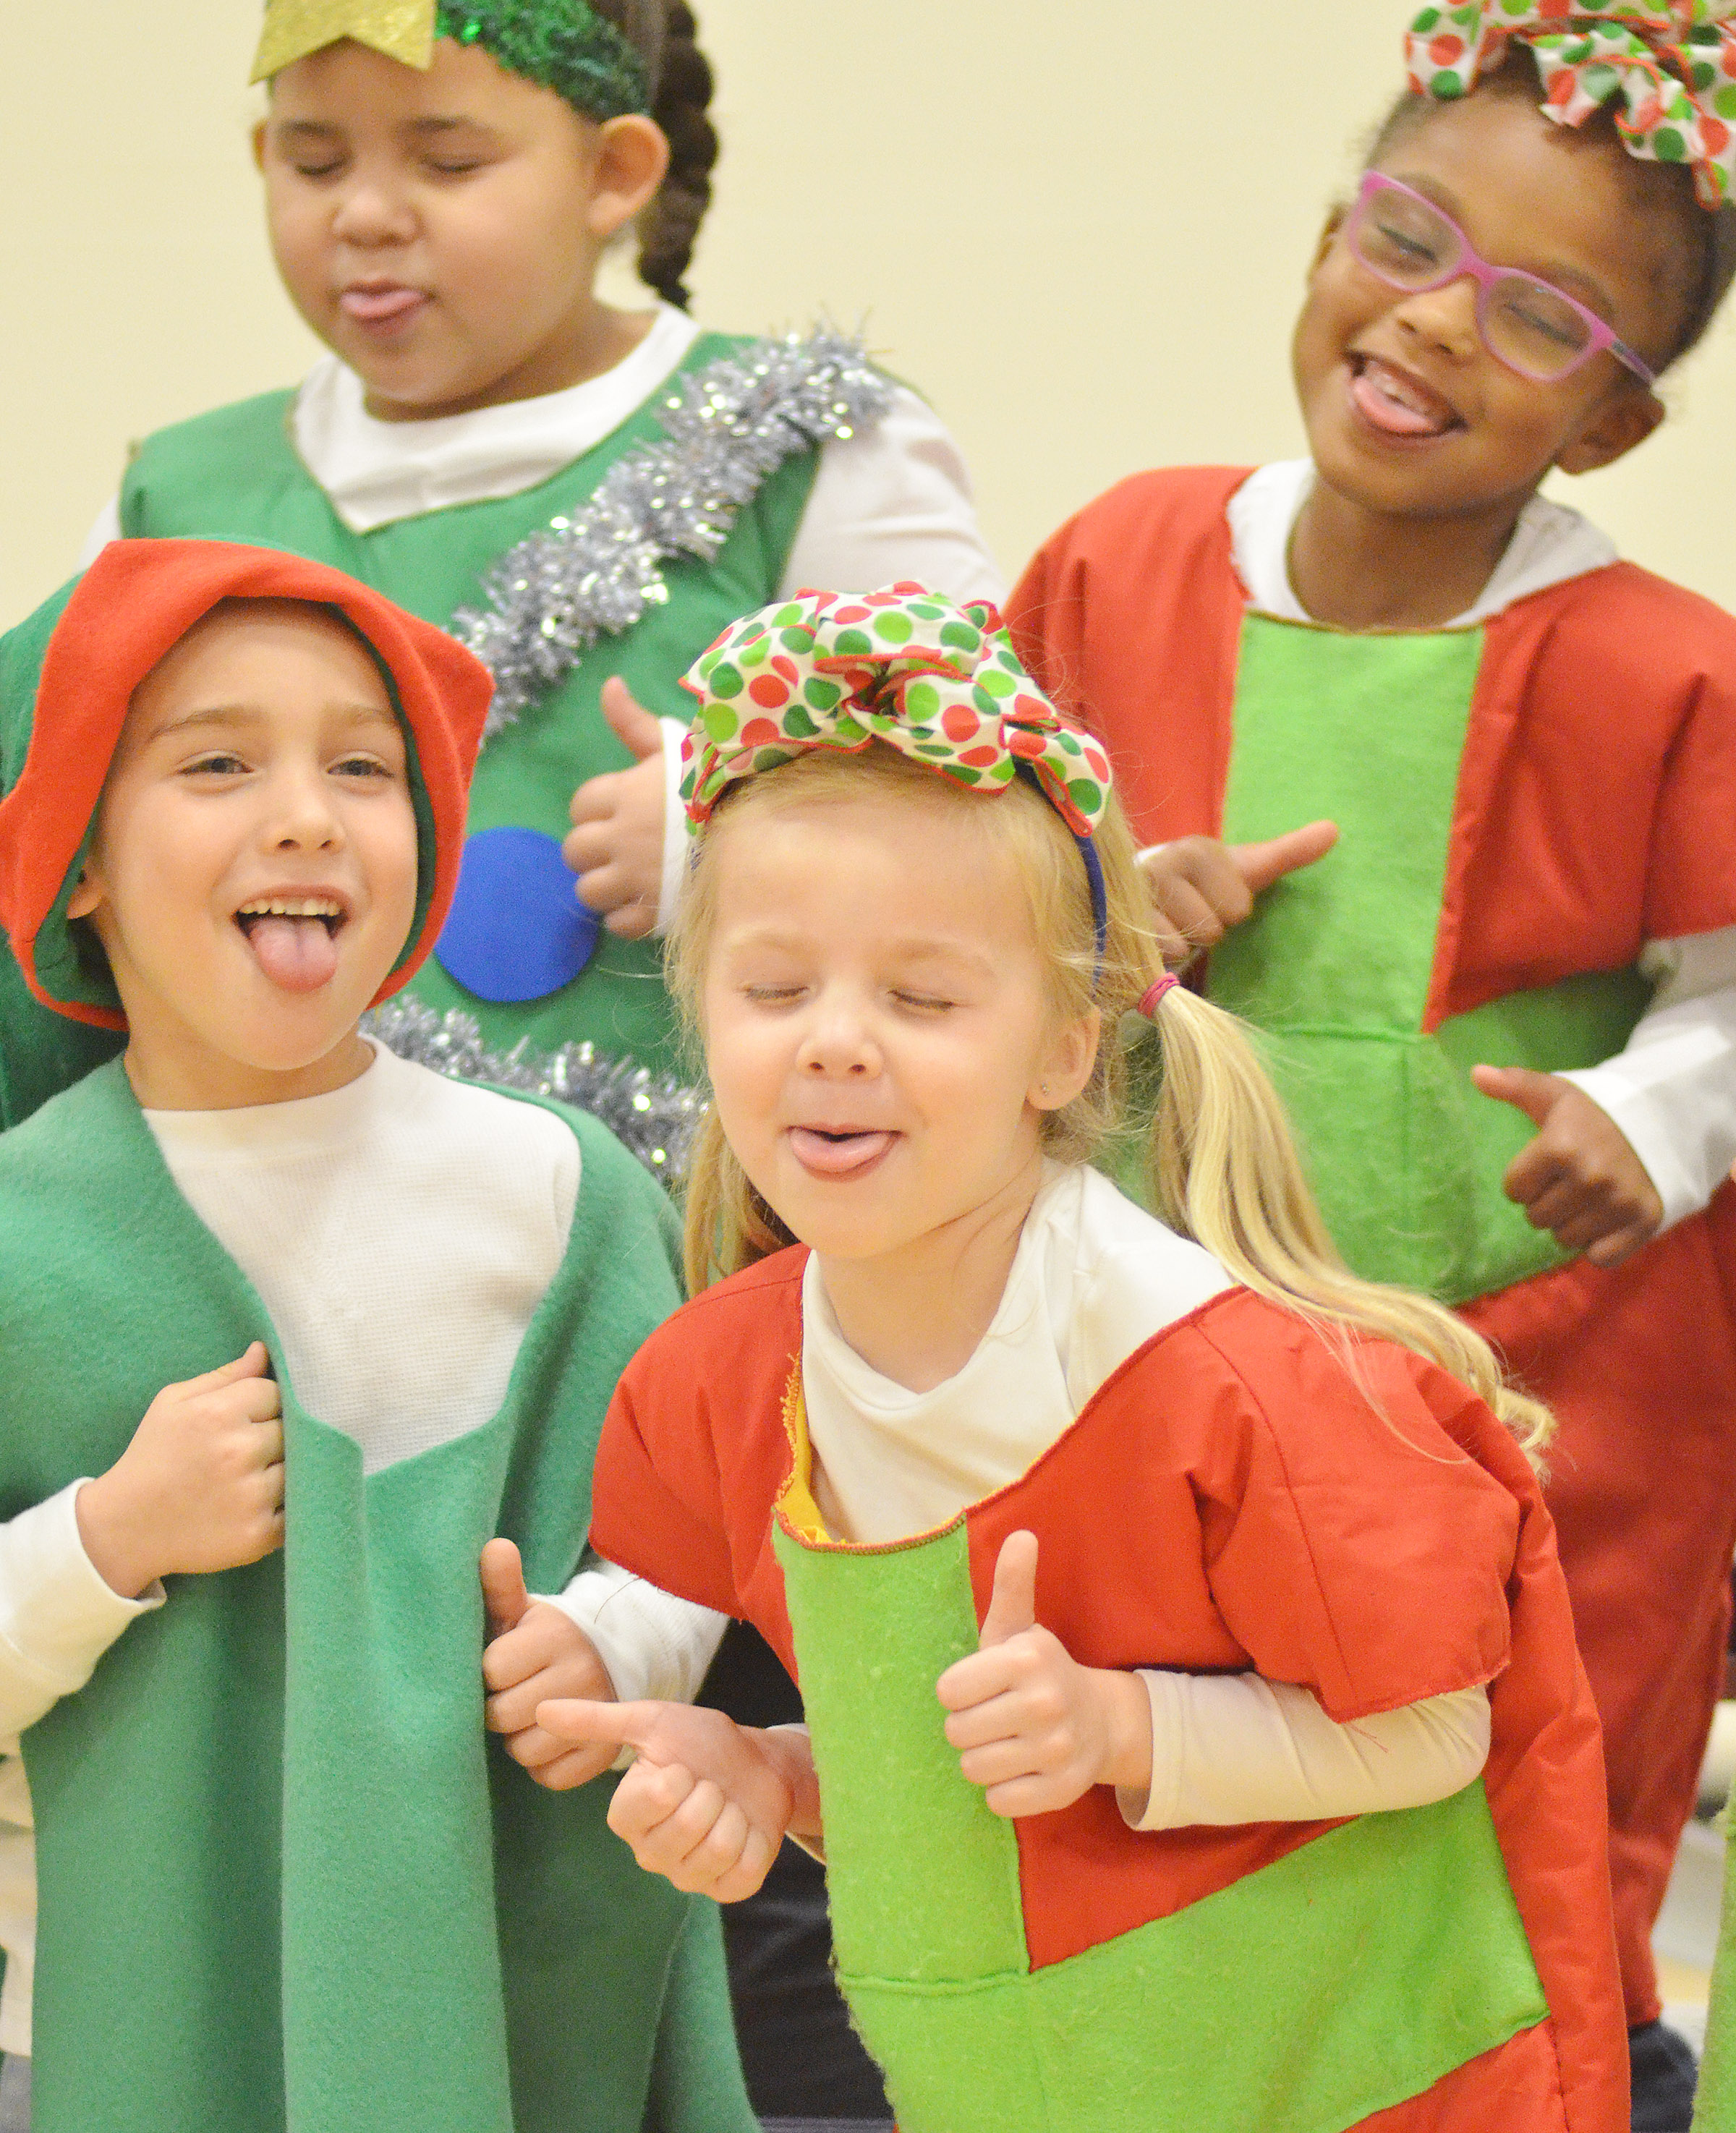 CES kindergarteners, from left, front, Dane Gray and Trinidy Gribbins, and, in back, Lillian Merriweather and Daya Griffin sing and dance.